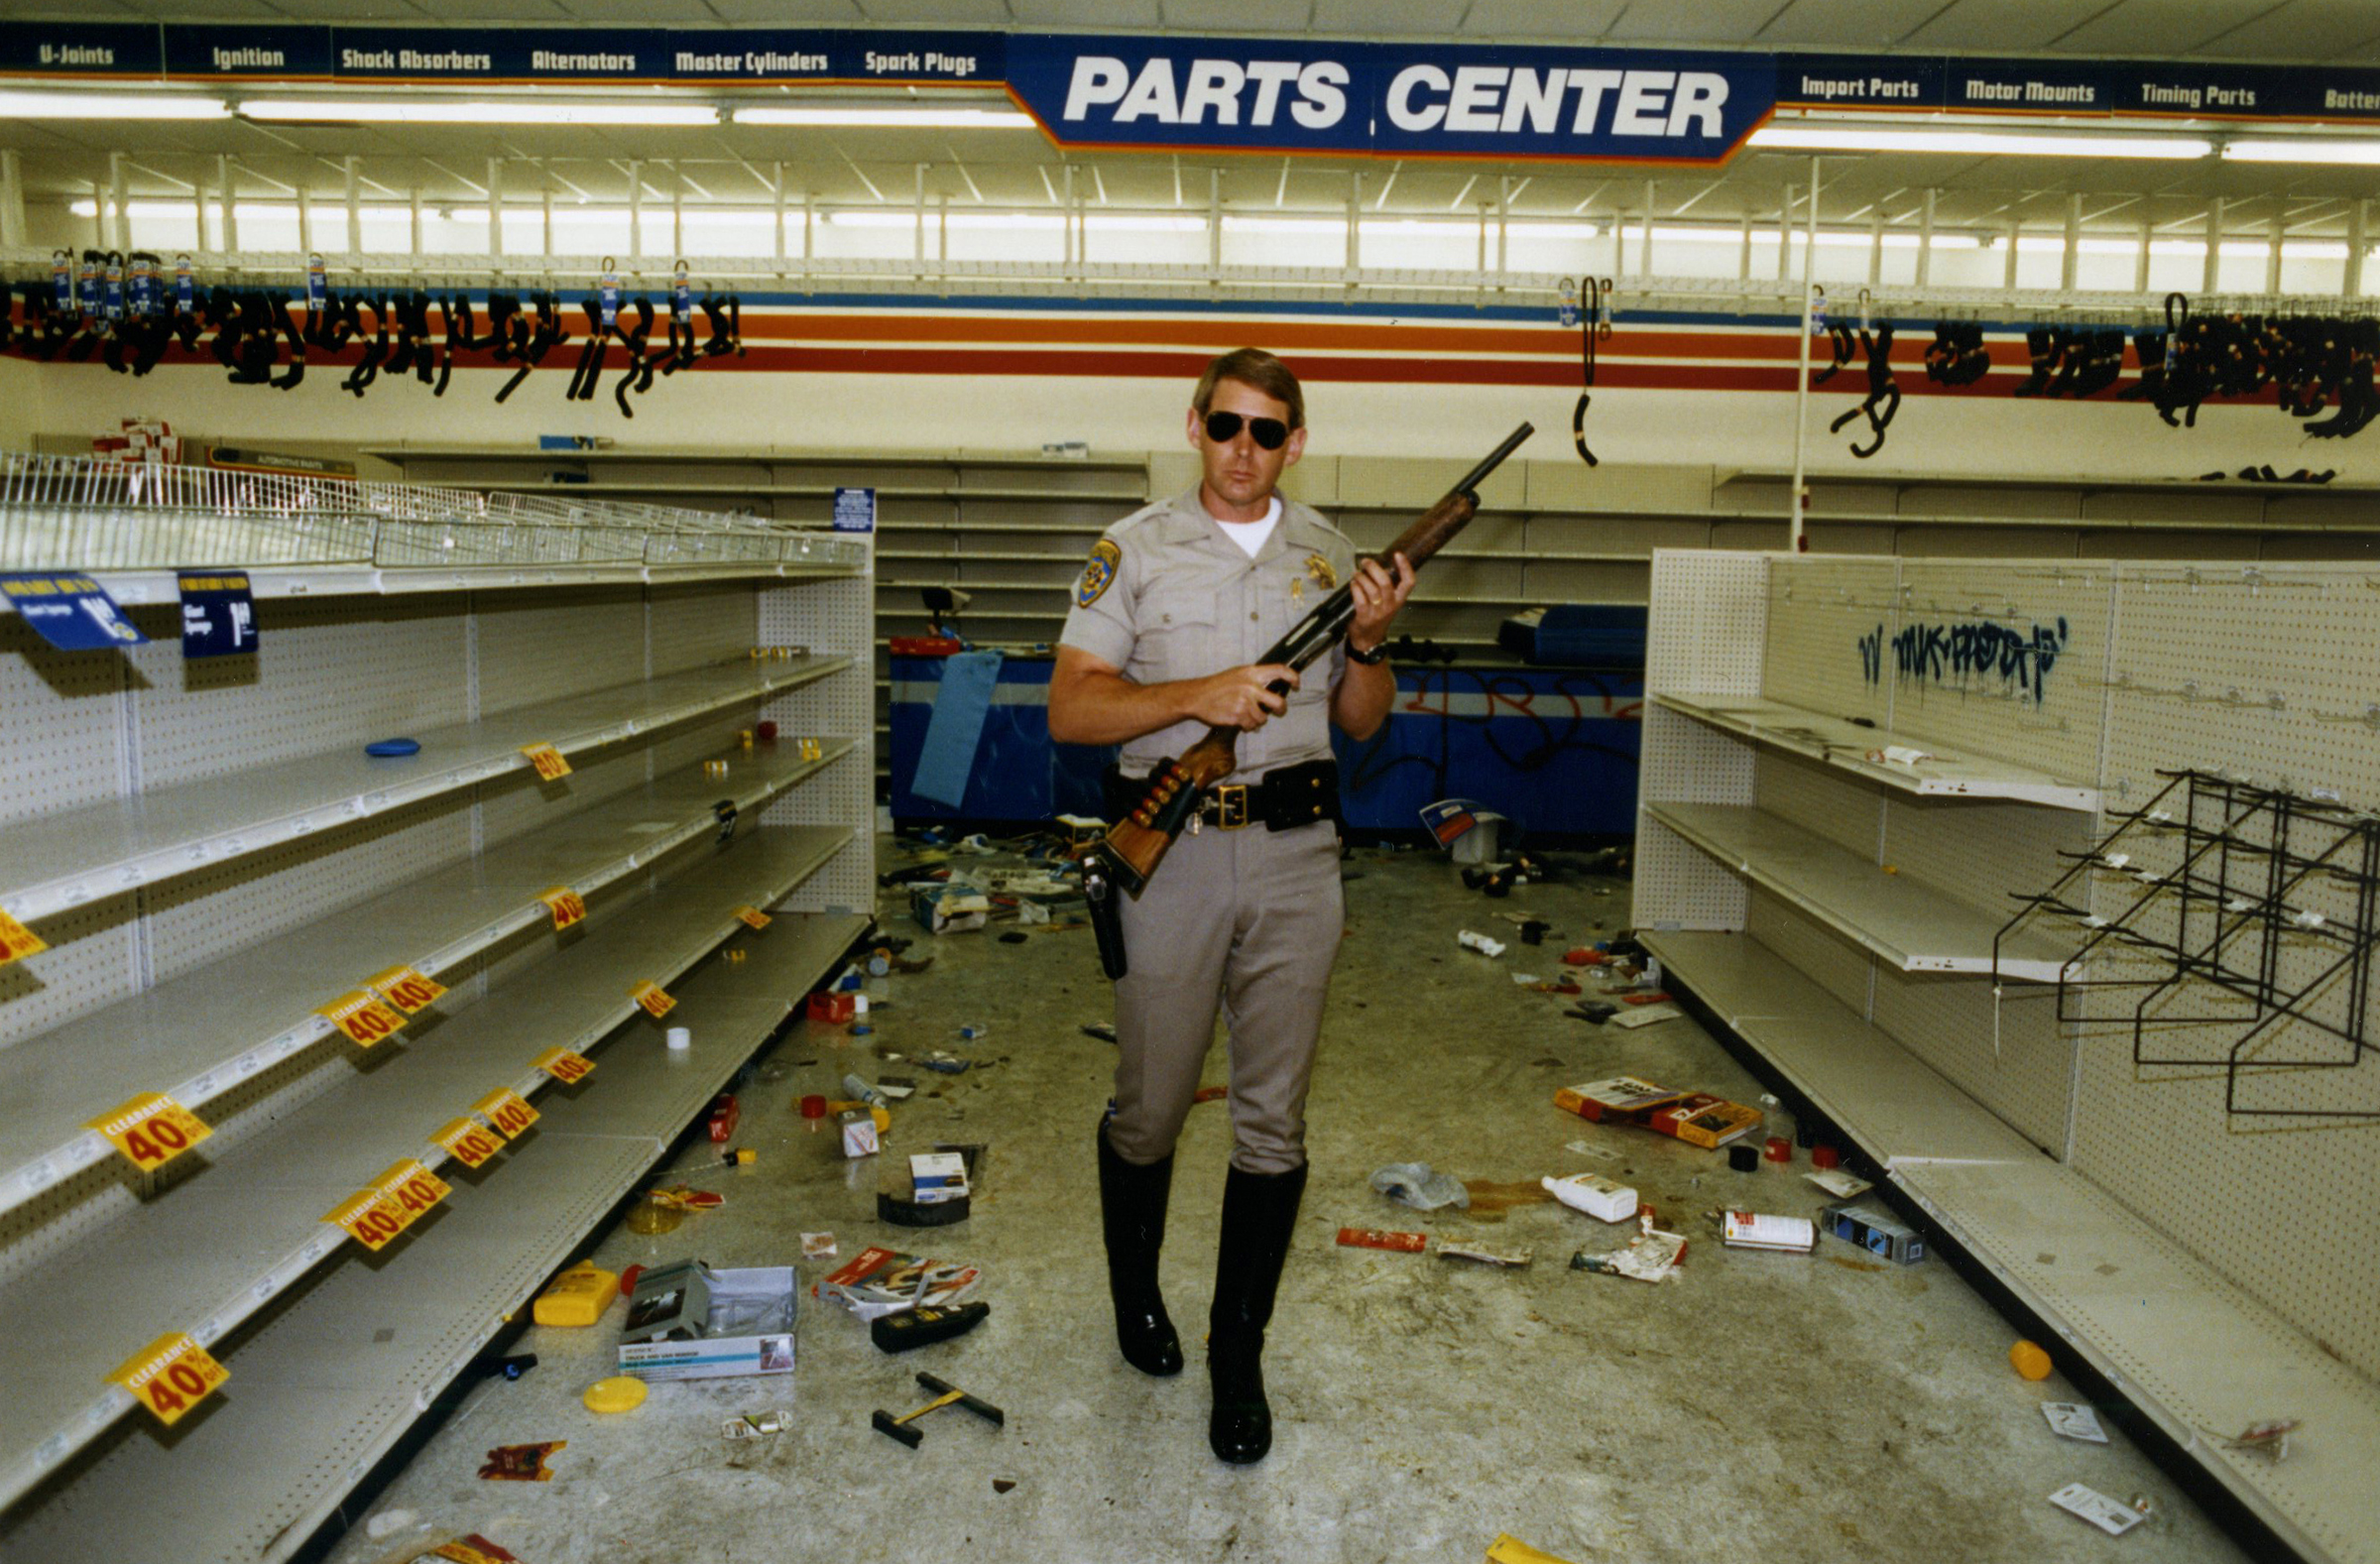 Officer Hugh Gnecco of the California Highway Patrol checks for looters in an auto parts store at Washington Boulevard and Western Avenue during the L.A. riots on May 1, 1992.